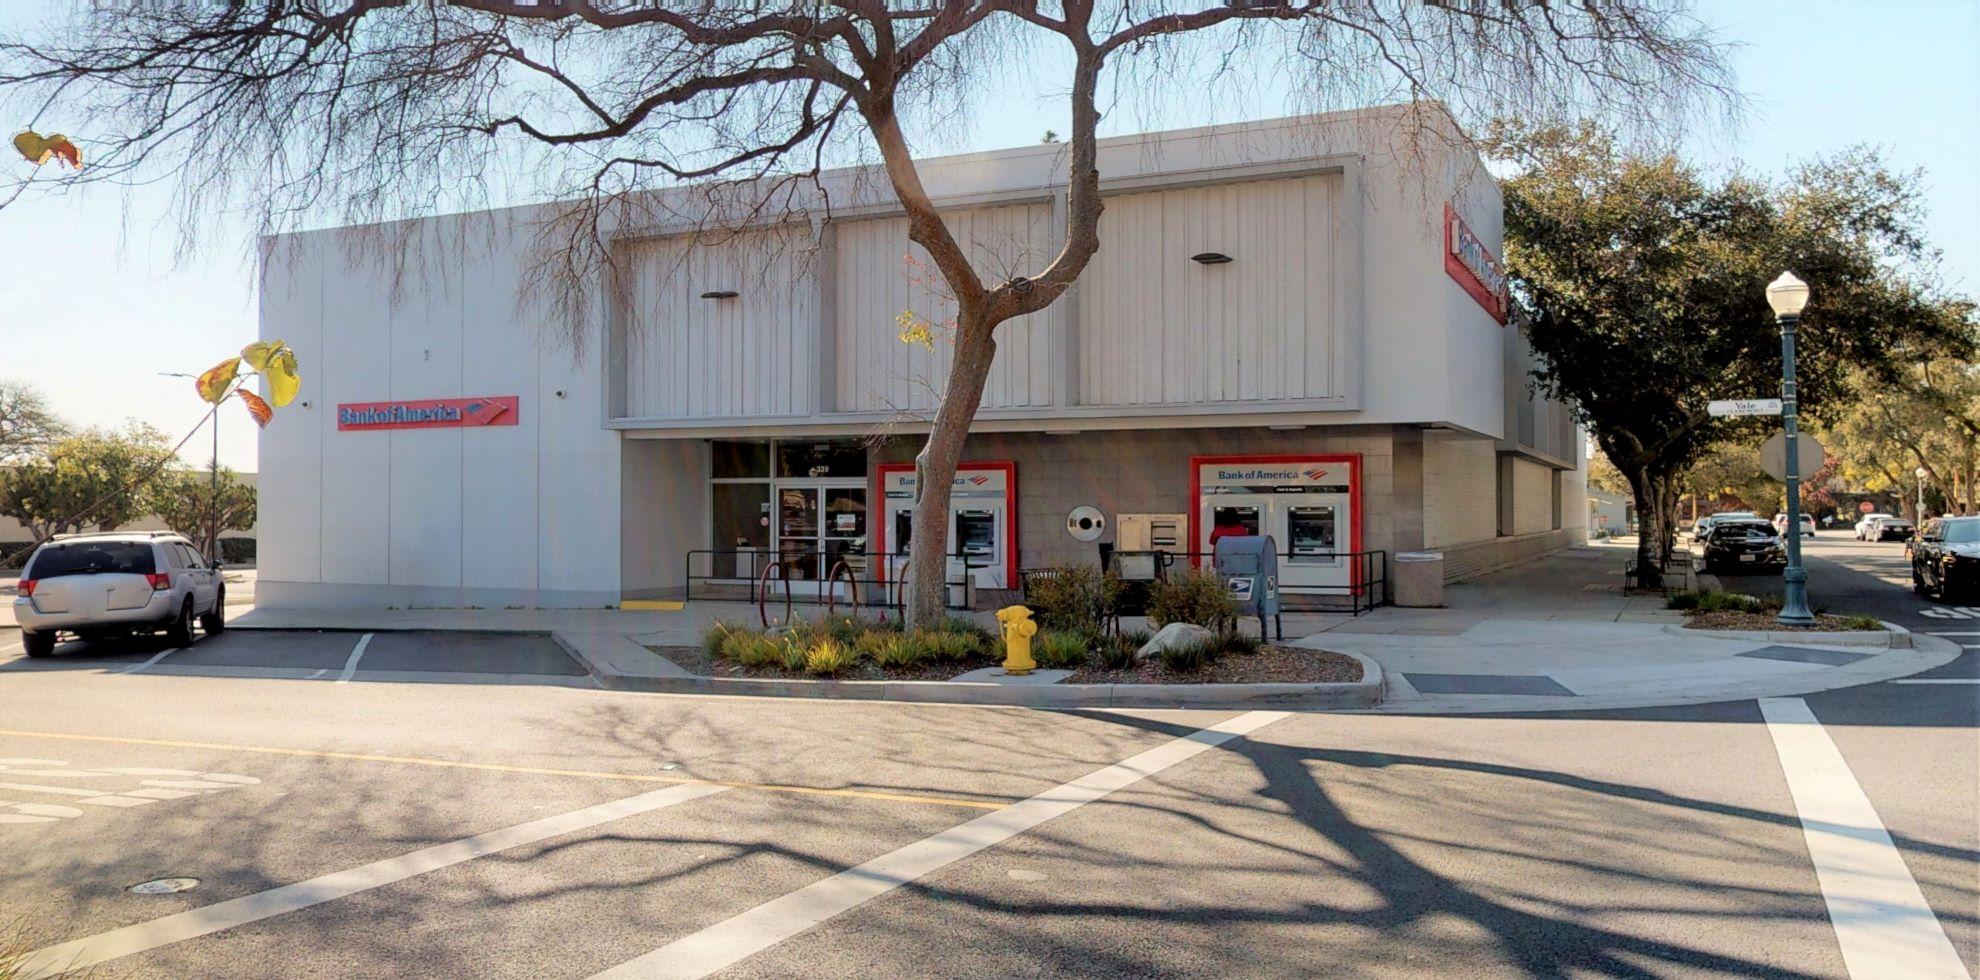 Bank of America financial center with walk-up ATM | 339 Yale Ave, Claremont, CA 91711